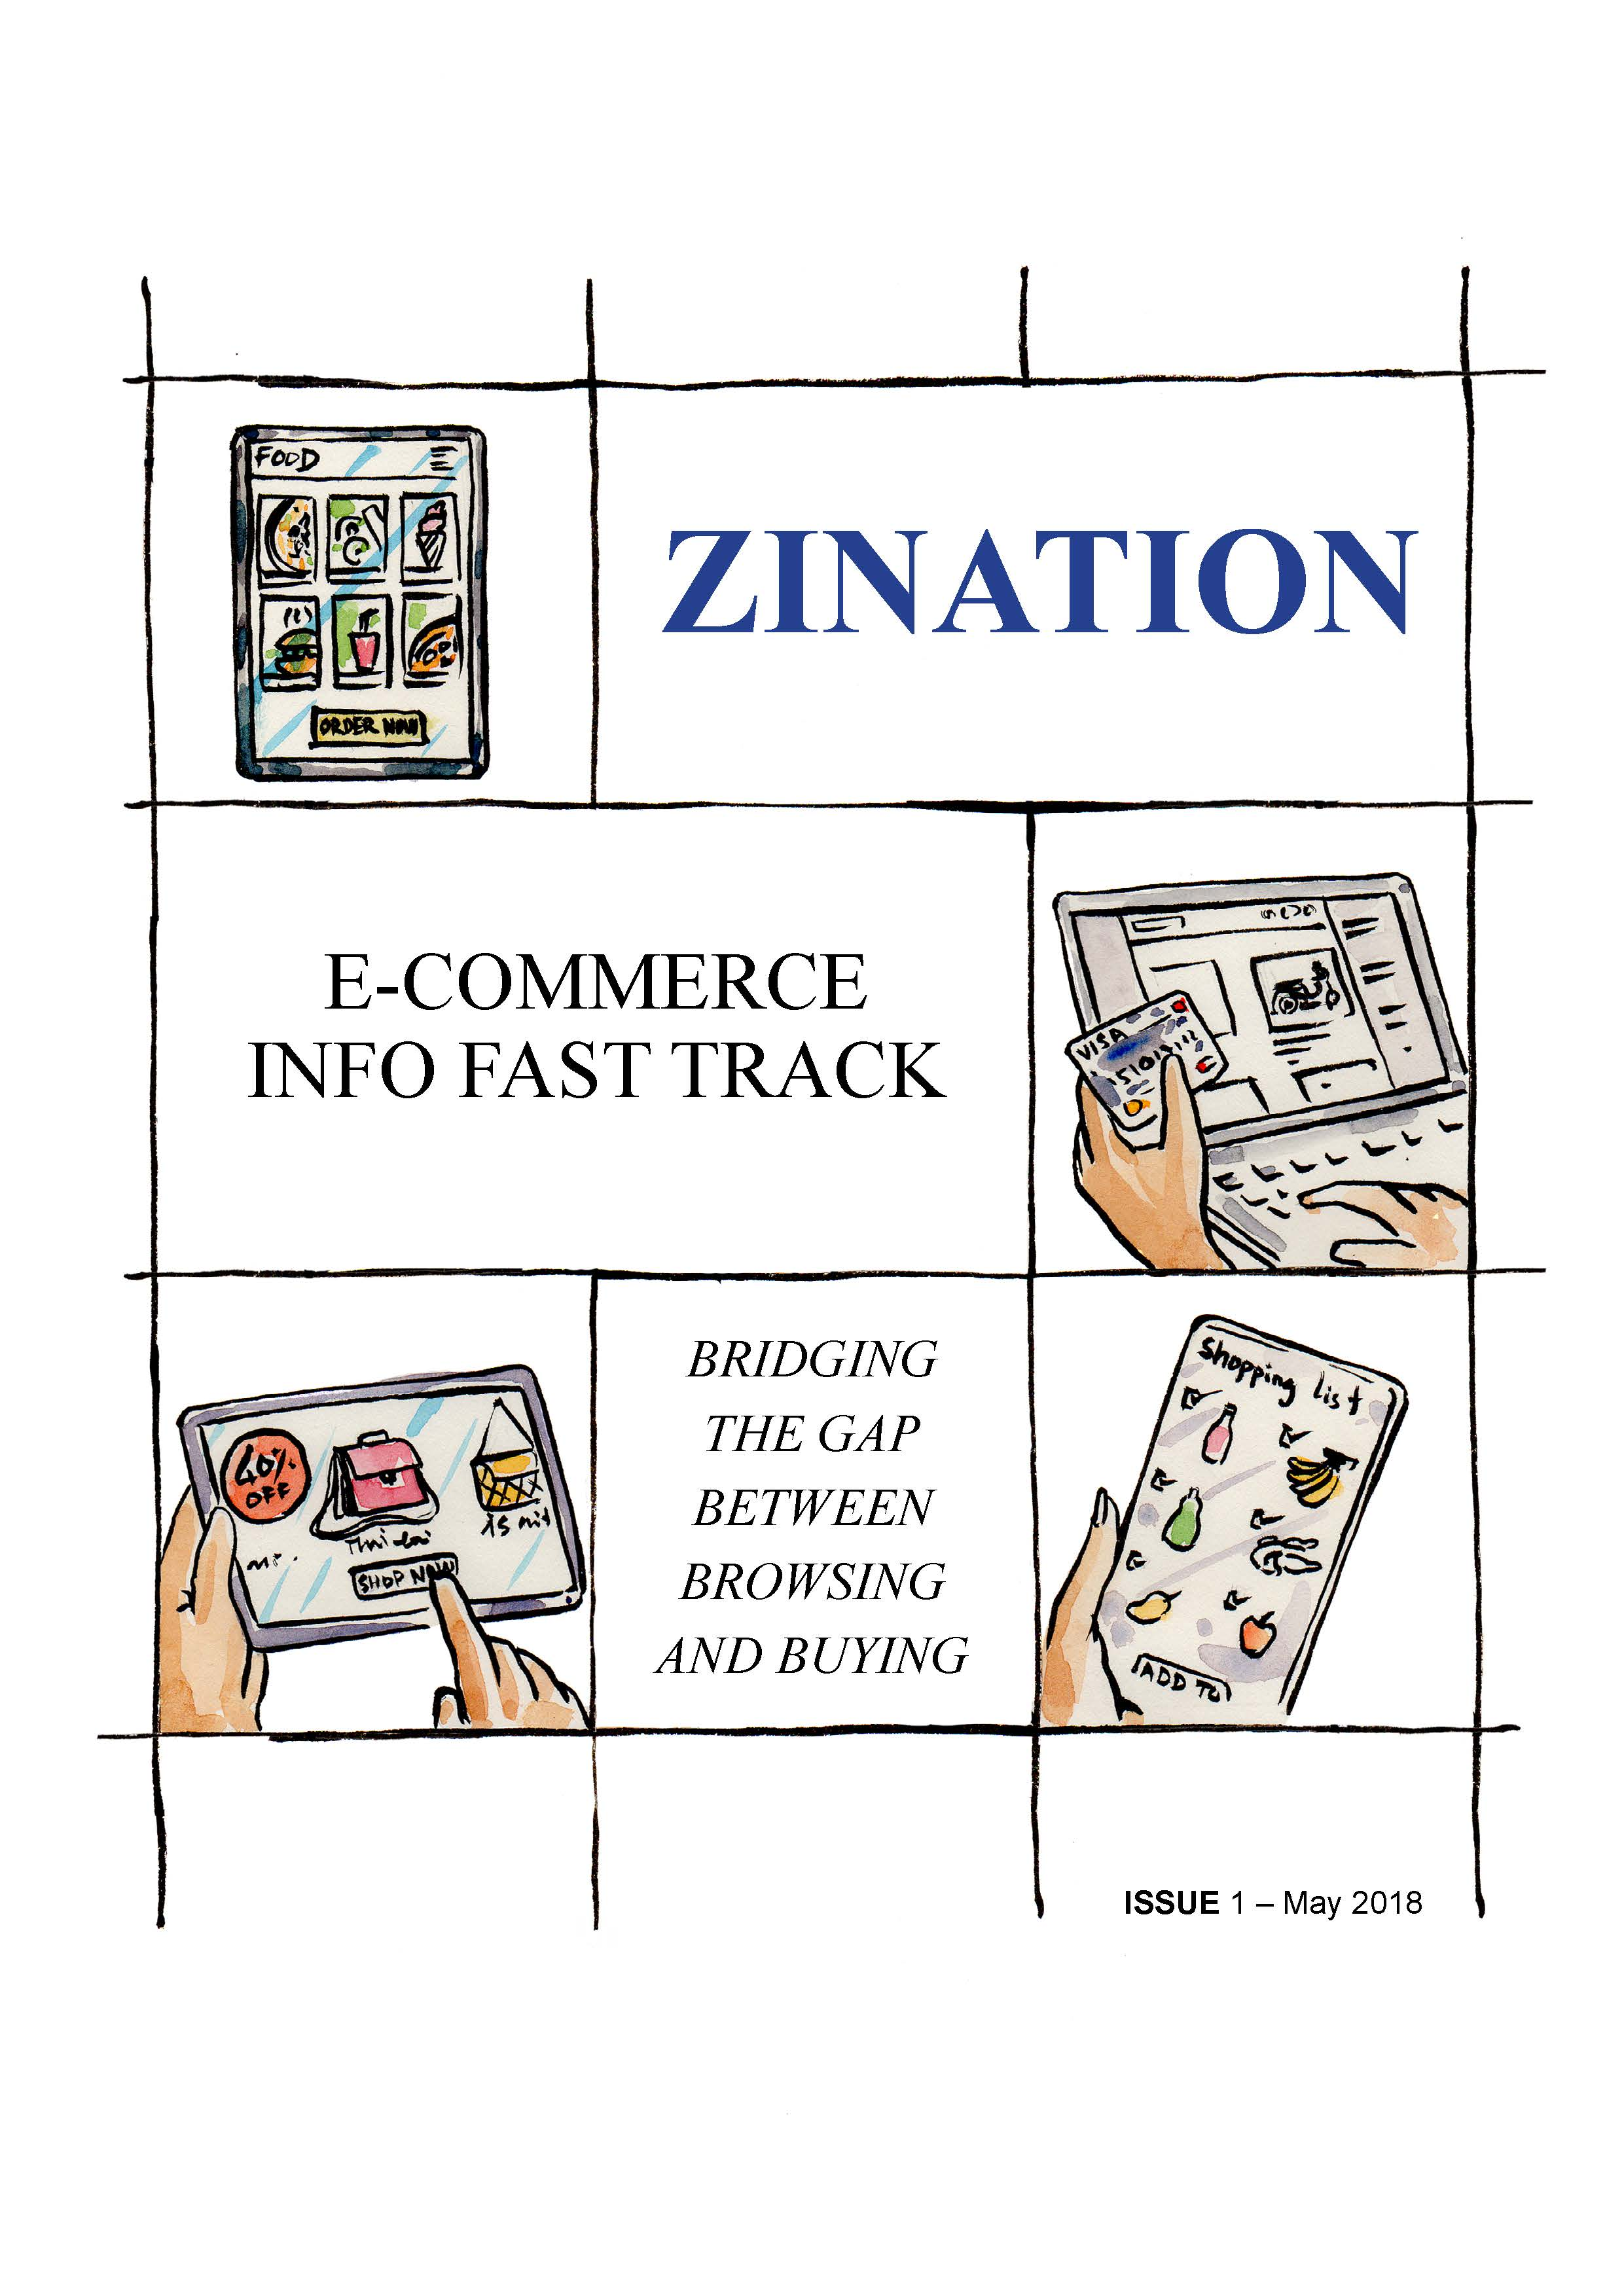 Info Fast Track ISSUE 01 - The Most Innovative Digital Publishing